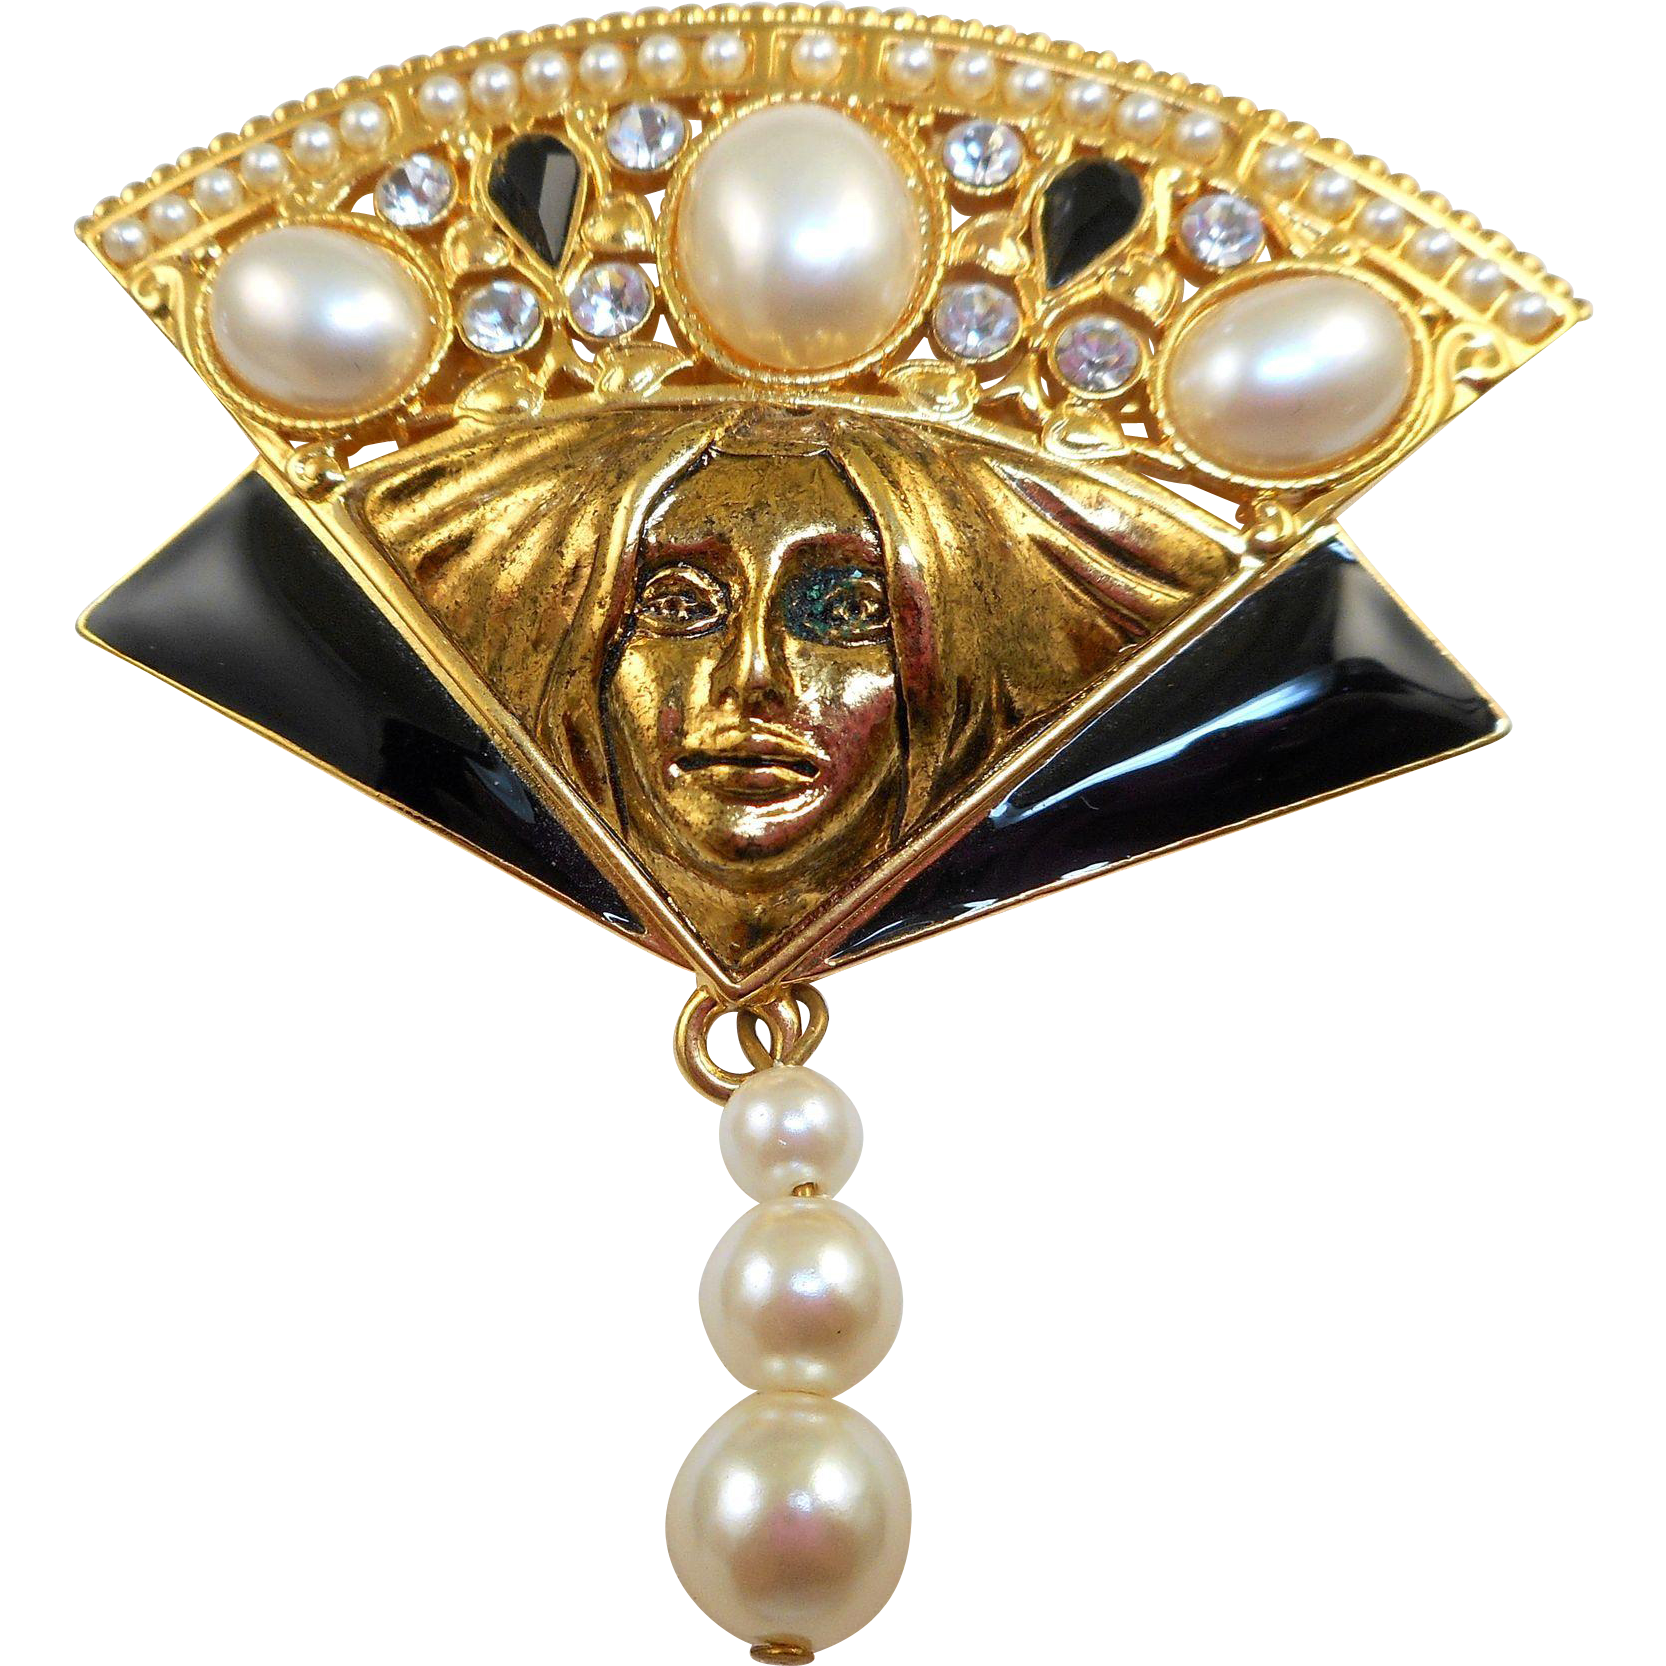 Berebi Fan Lady Face Brooch - Limited Edition